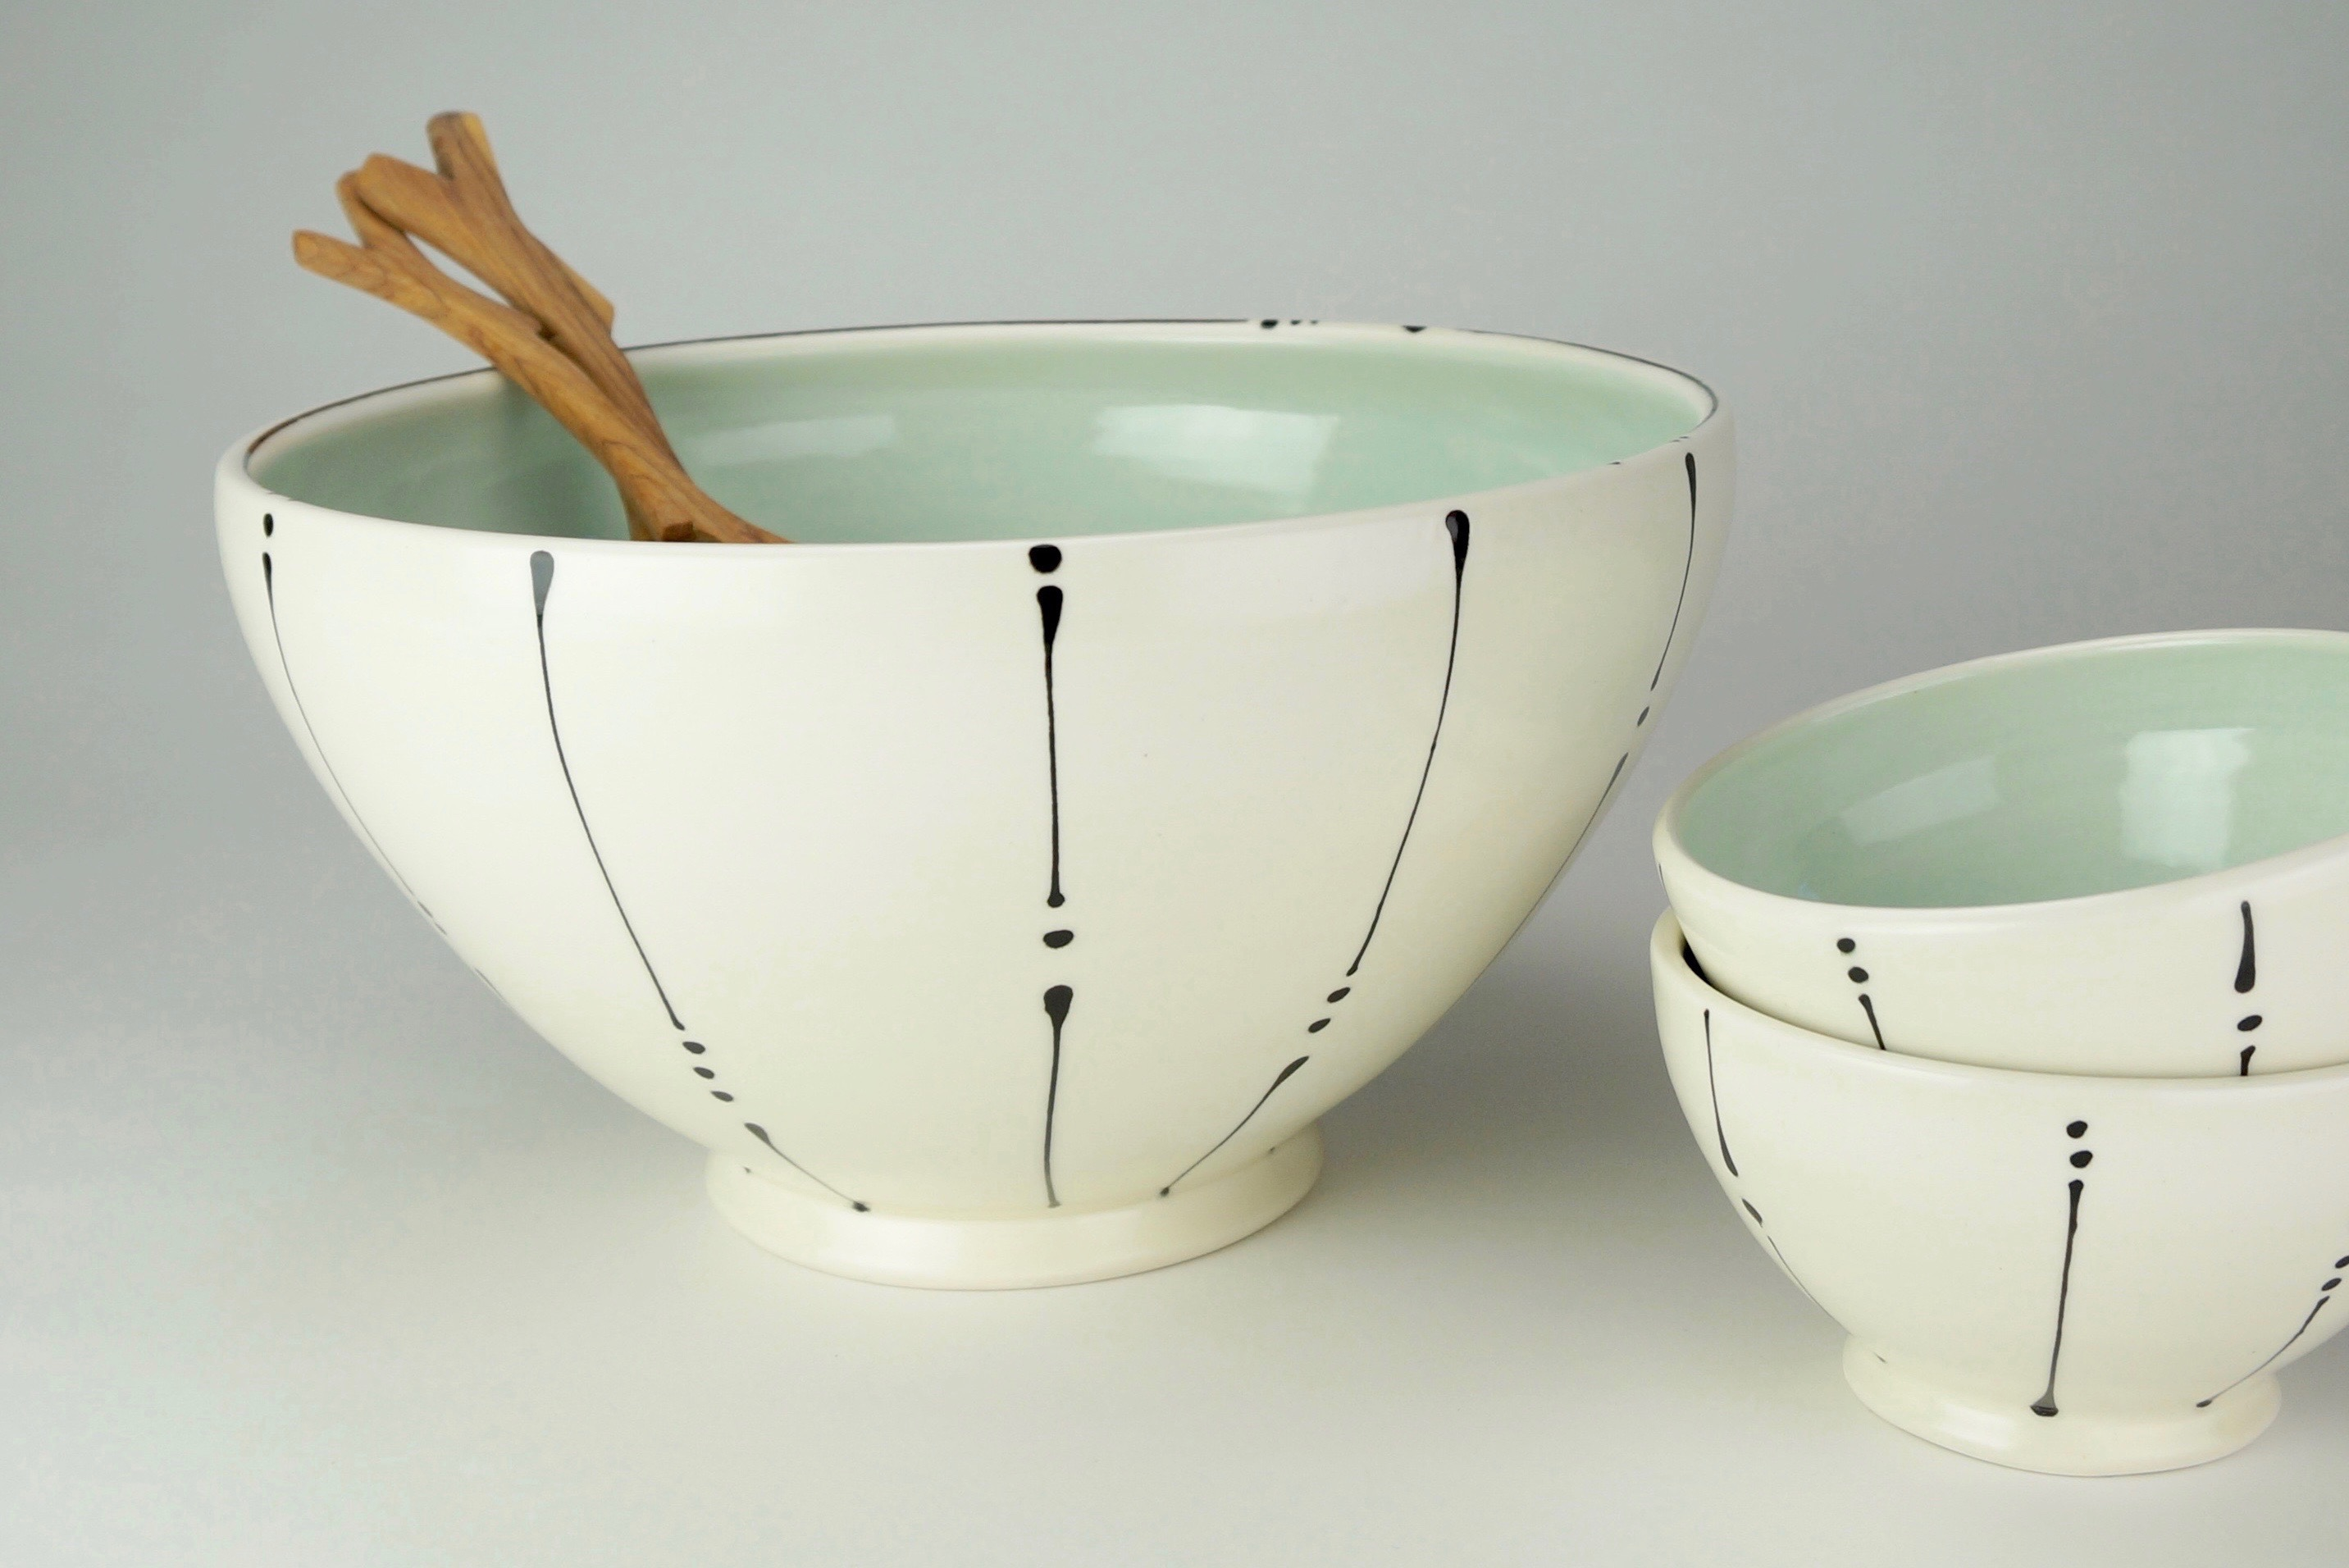 02 Serving Bowl two rice bowls